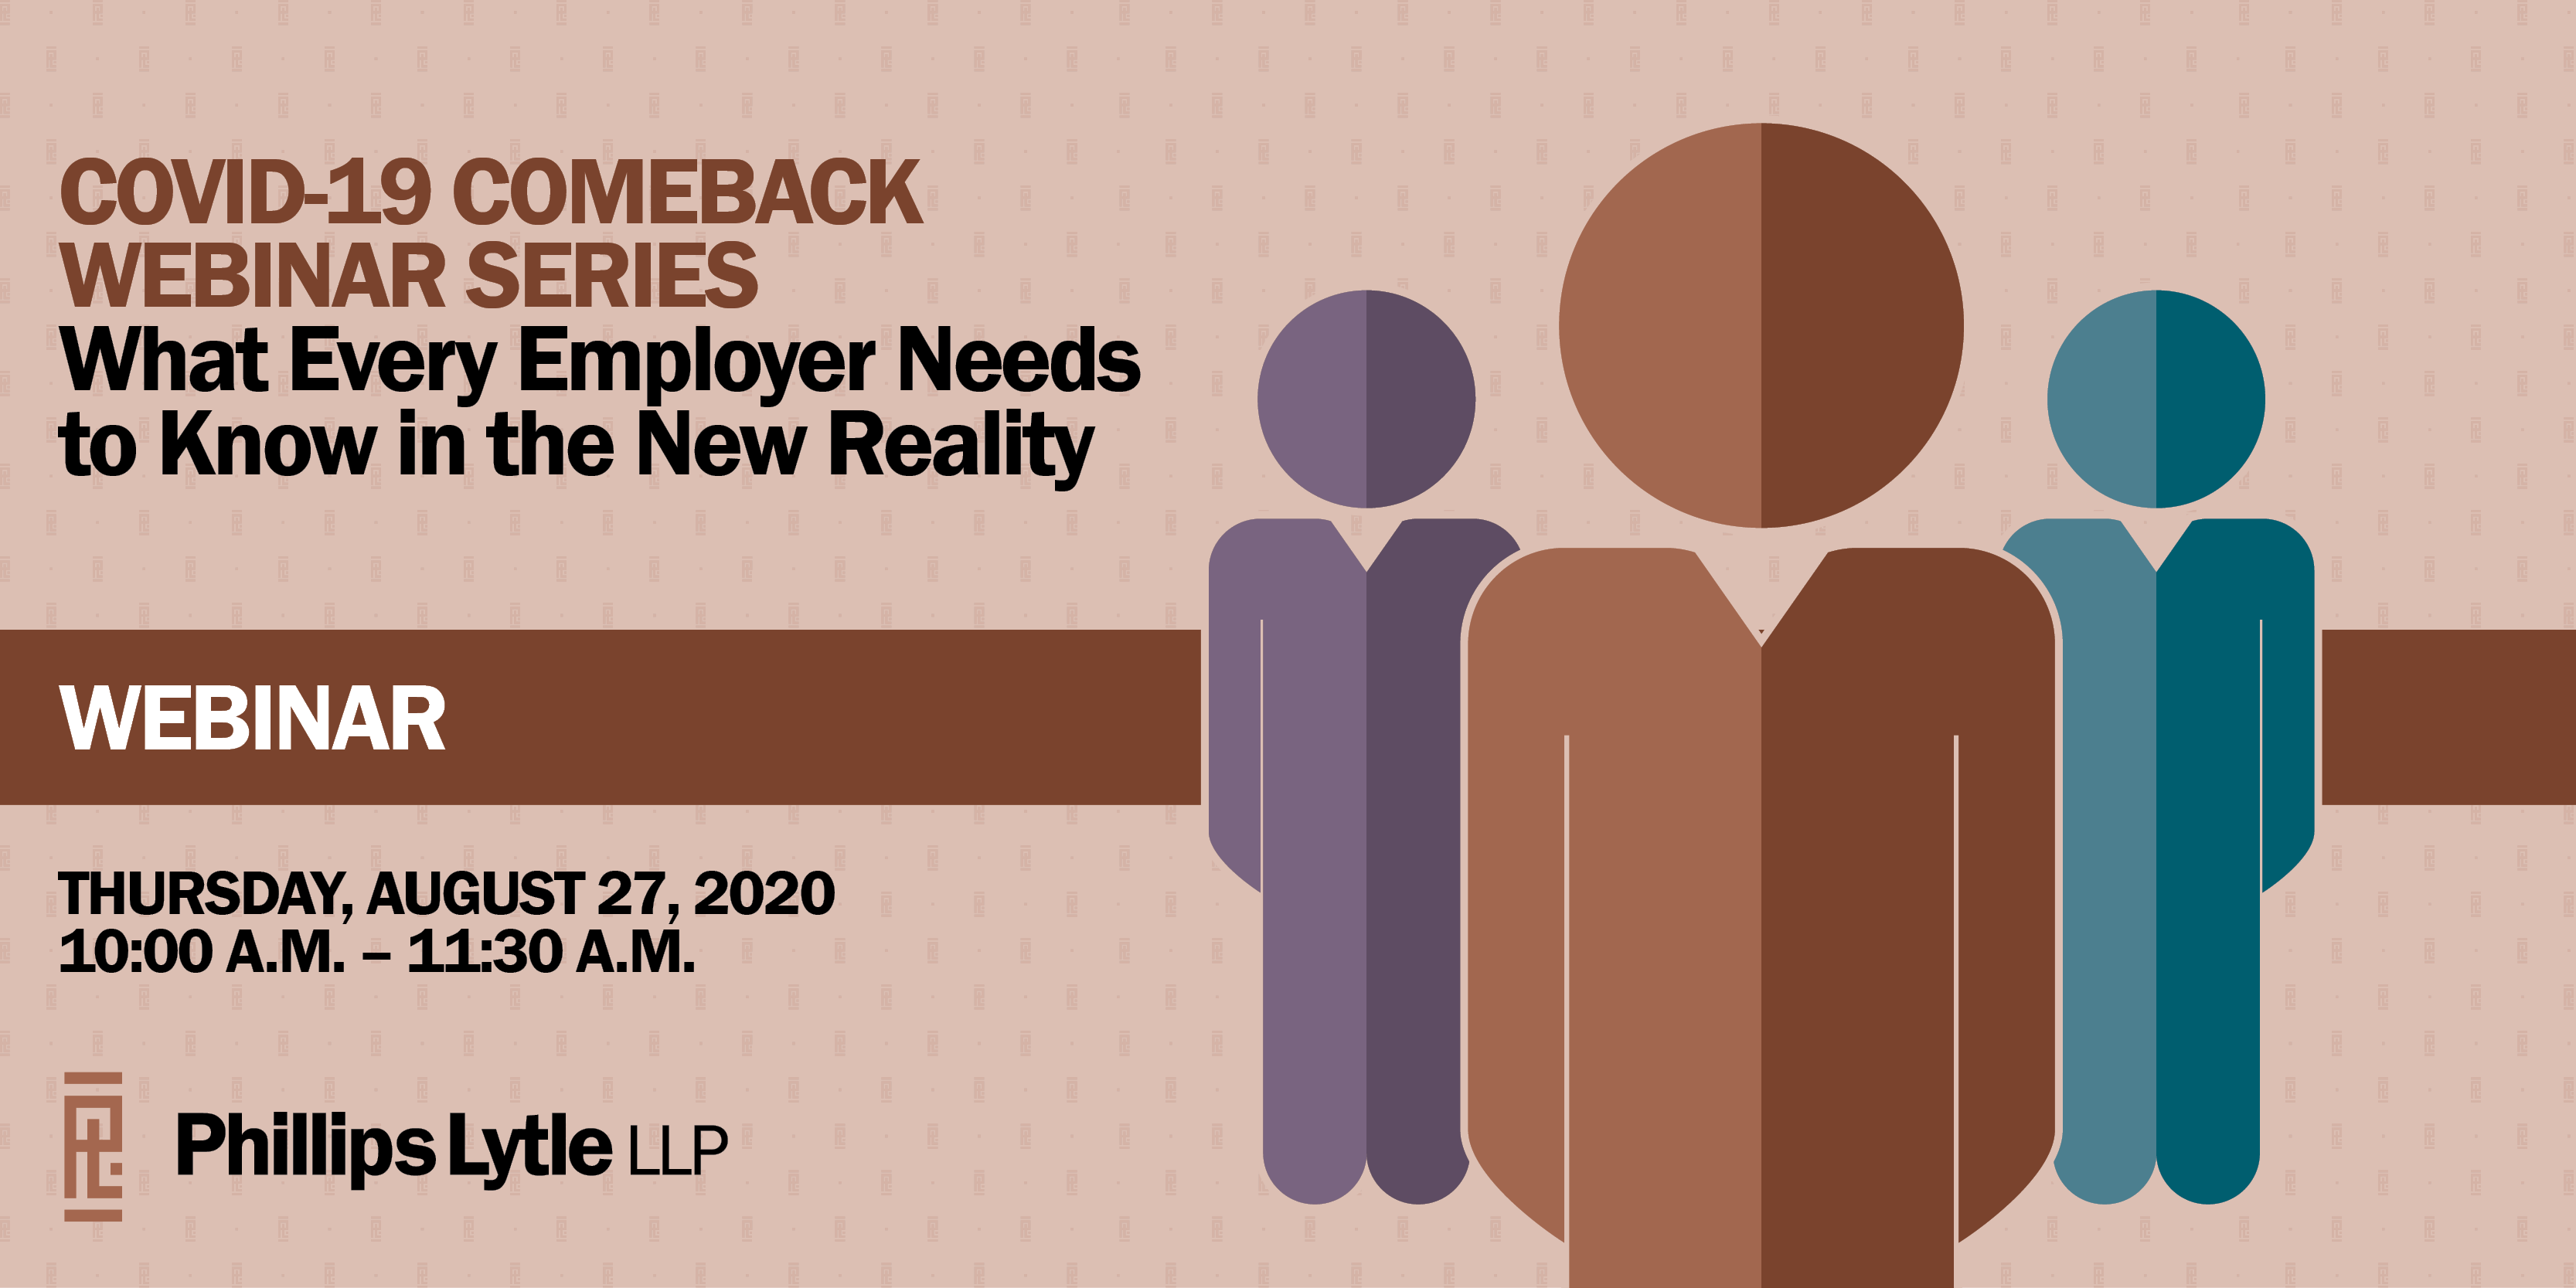 Webinar | COVID-19 Comeback Series | What Every Employer Needs to Know in the New Reality